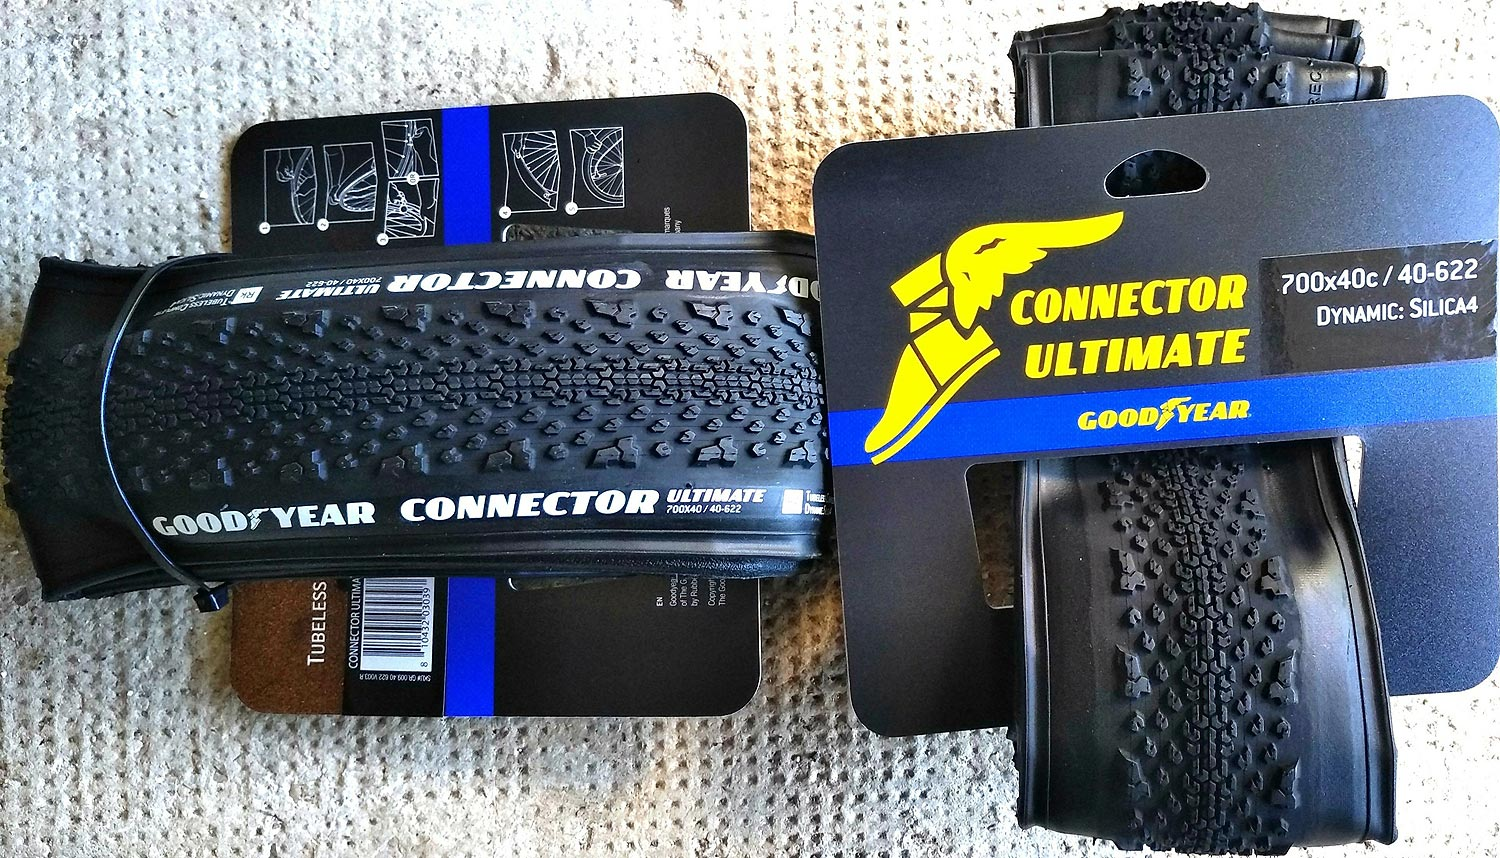 Test des pneus de gravel Gooddyear Connector Ultimate